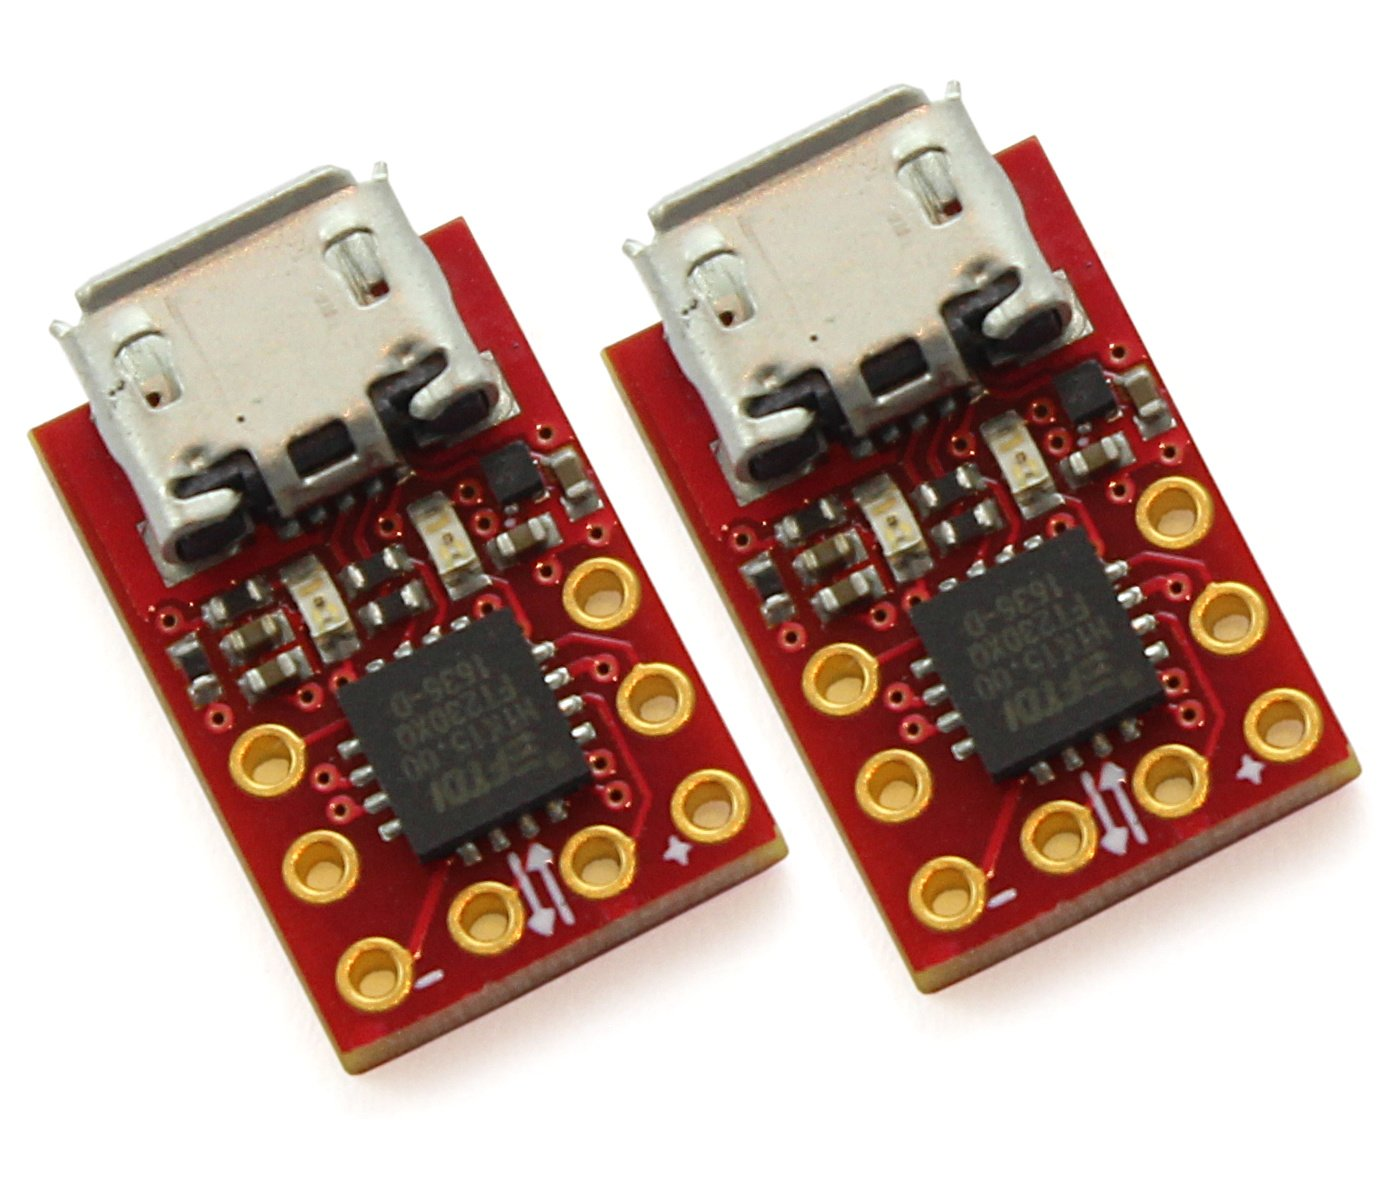 jim.sh Micro1v8 (2-Pack) - USB to 1.8V Serial Adapter with LEDs - FTDI FT230X chip by jim.sh